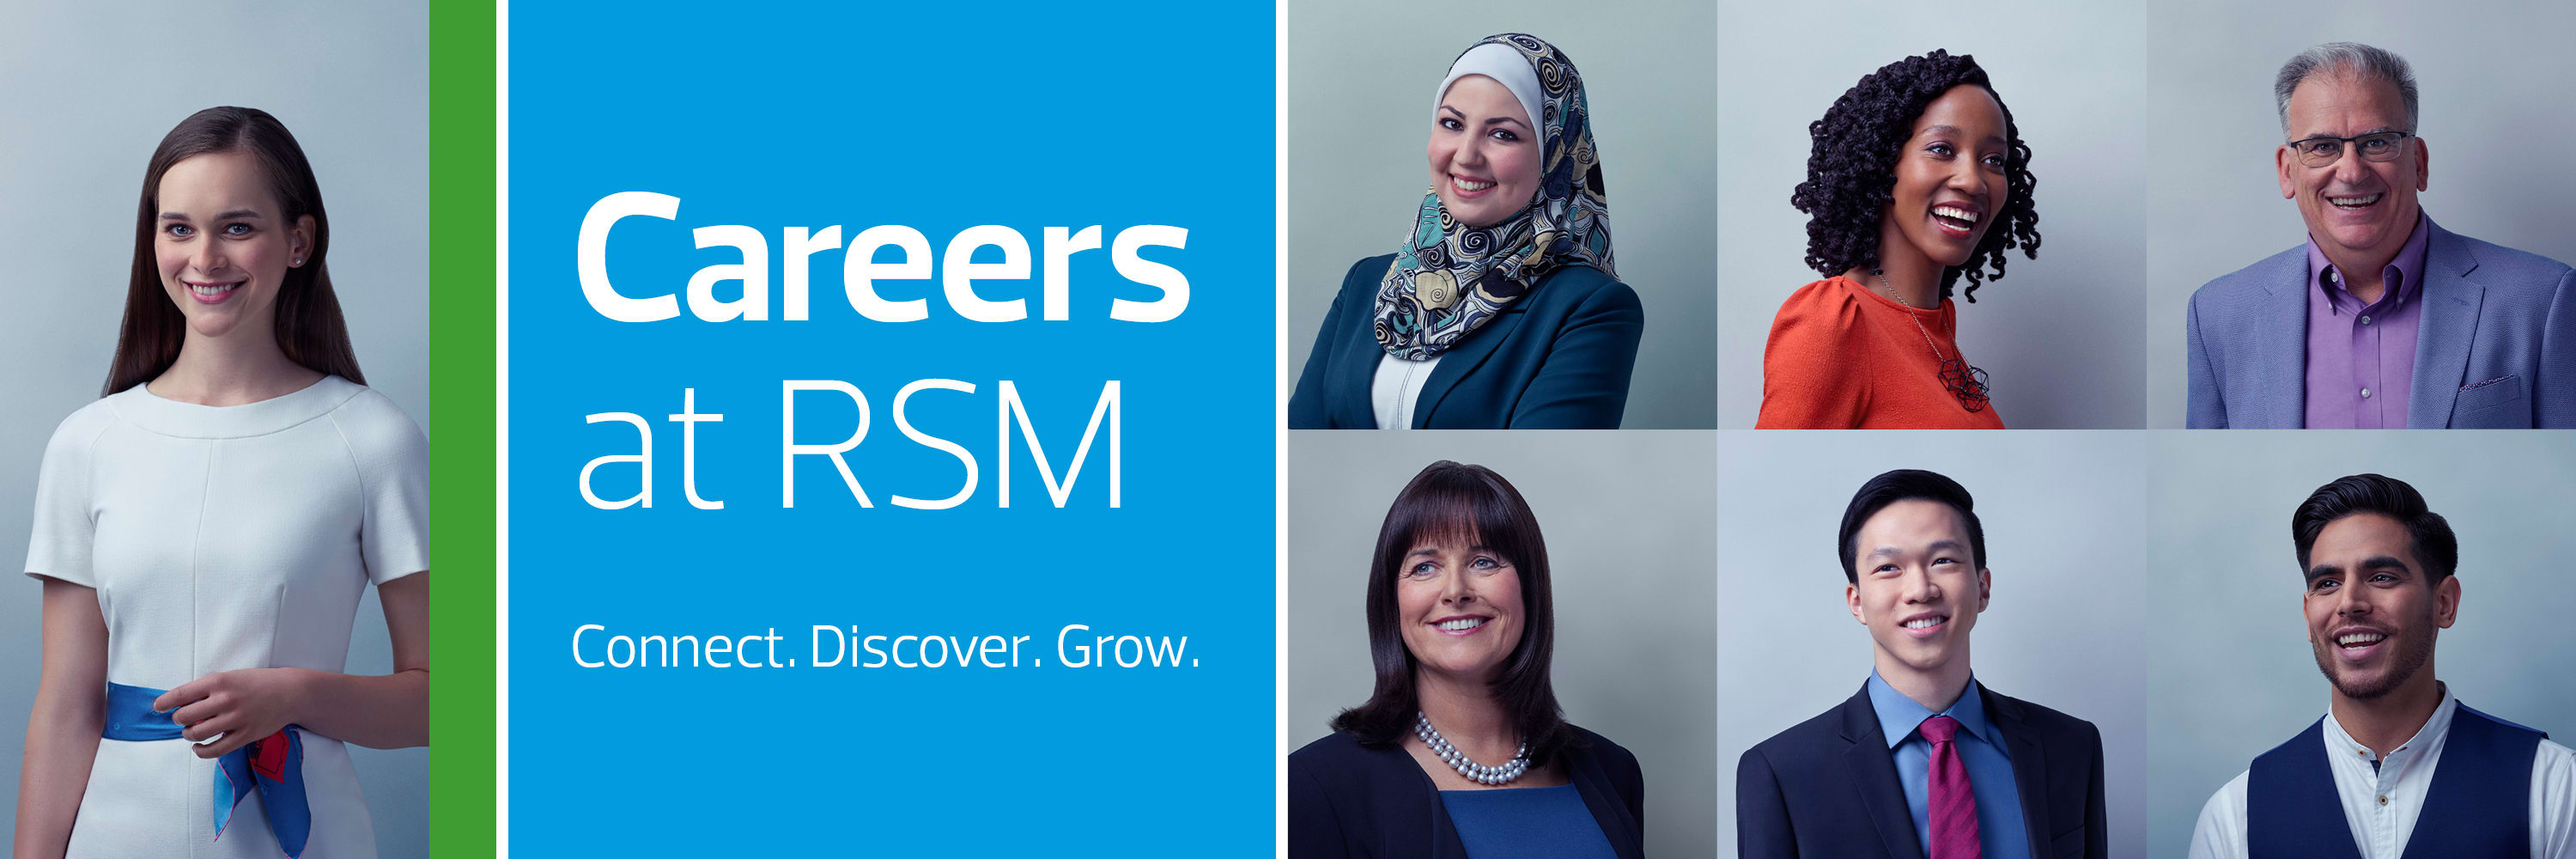 RSM Staff Photos on branded background for Current Opportunities at RSM